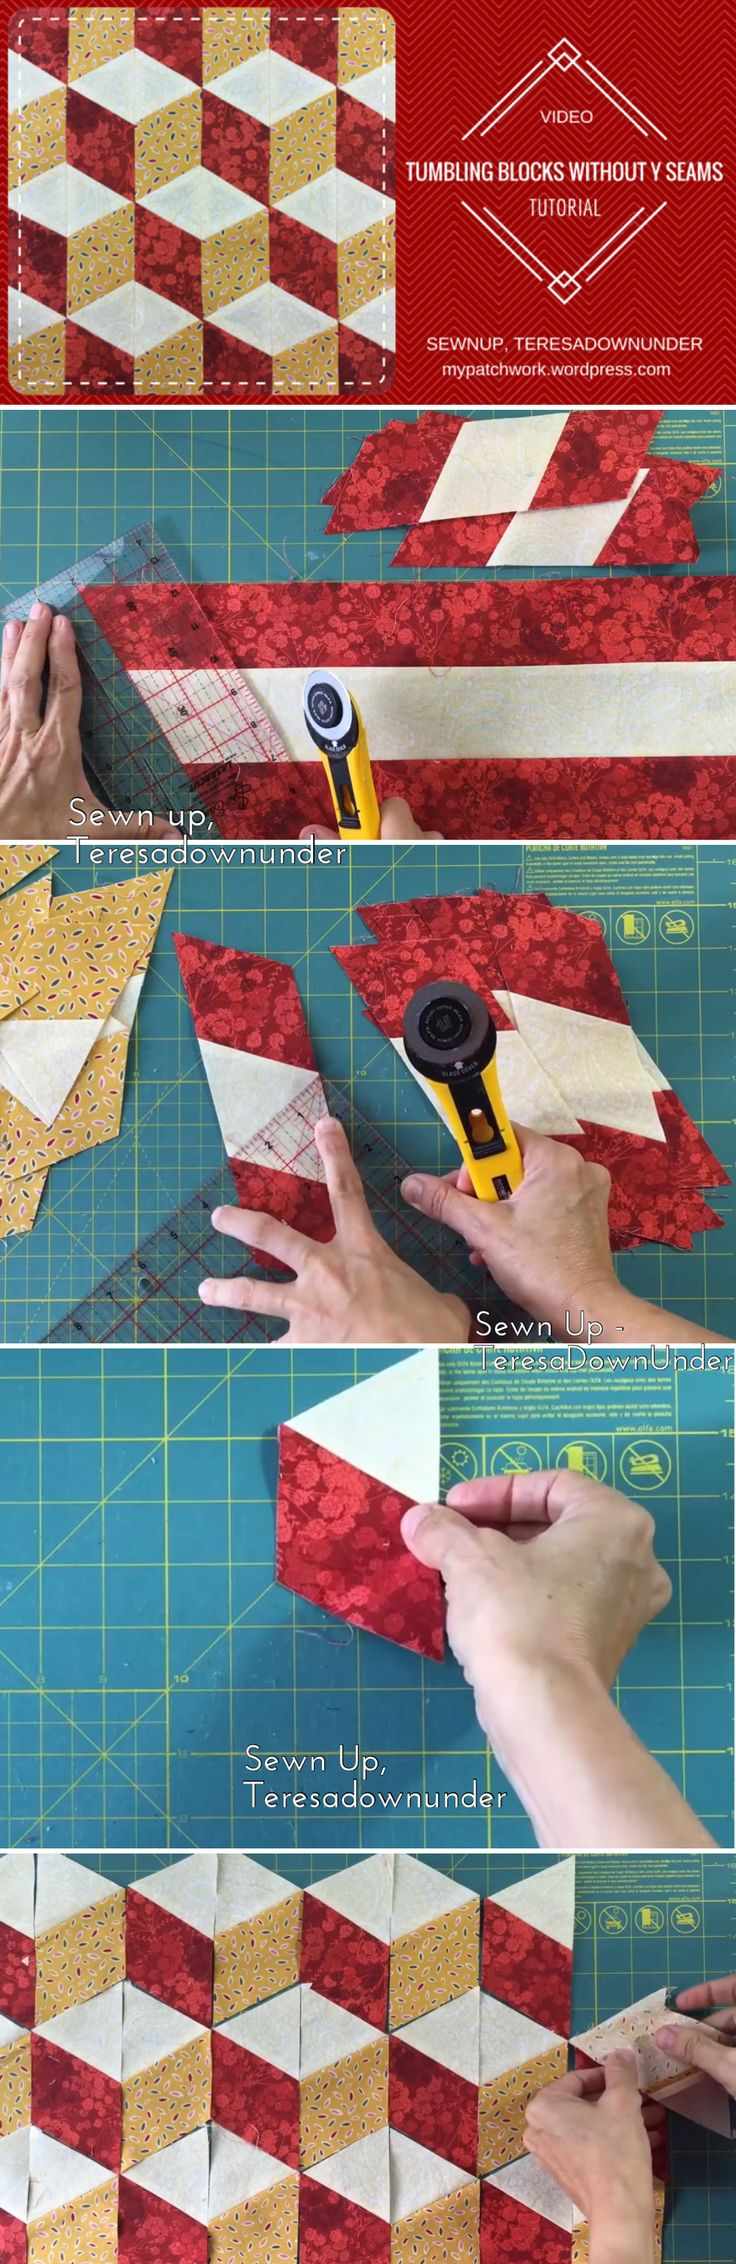 Video tutorial: No Y seams tumbling blocks - easy quilting